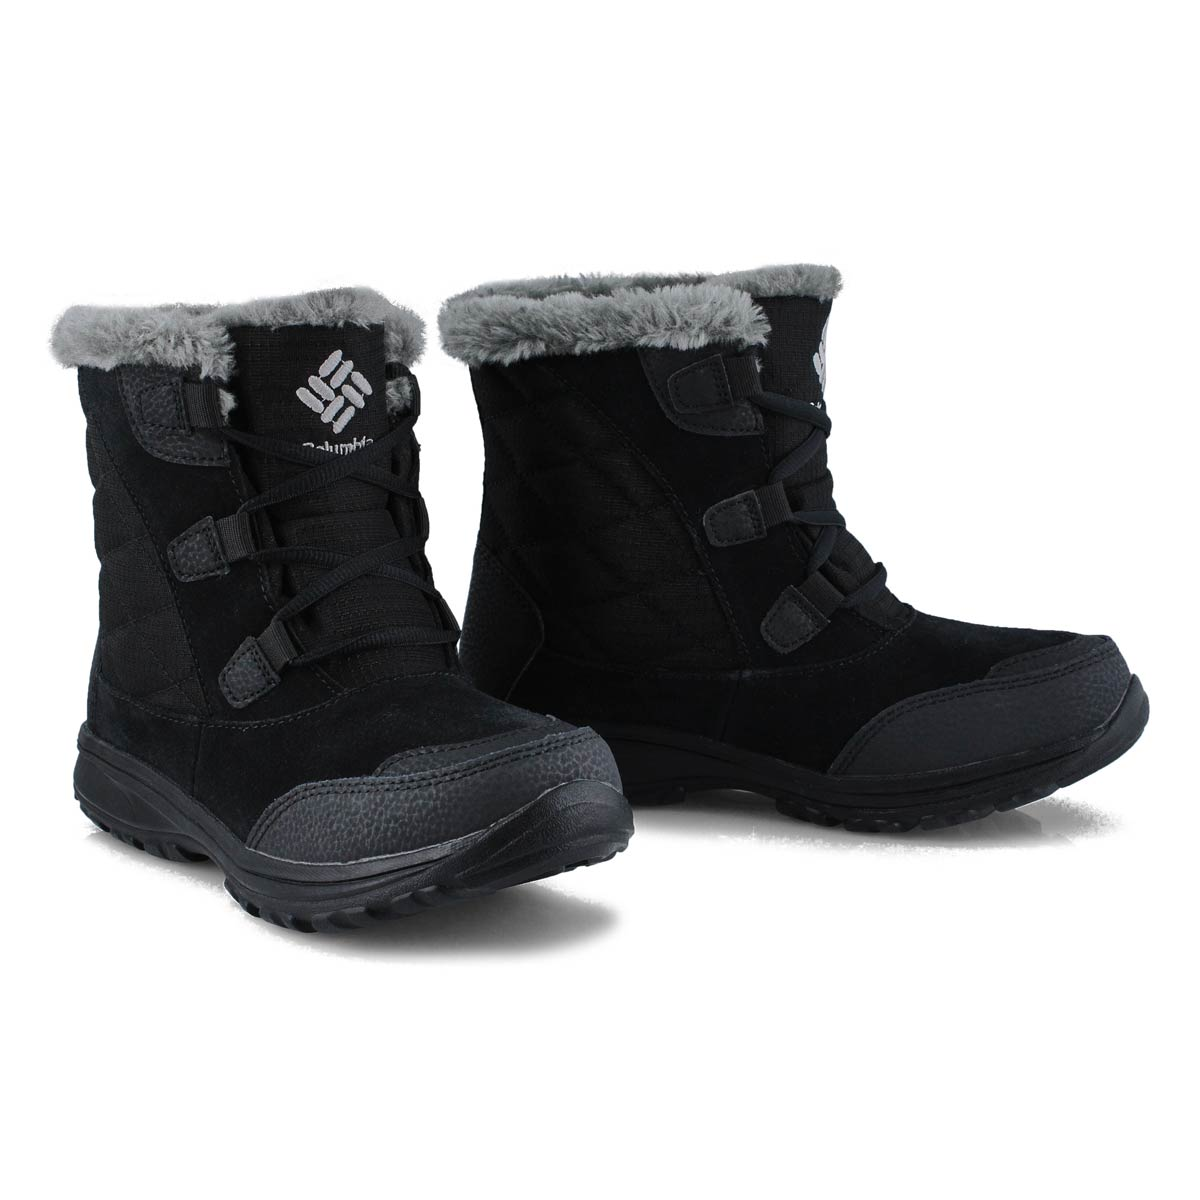 Lds Ice Maiden Shorty blk winter boot